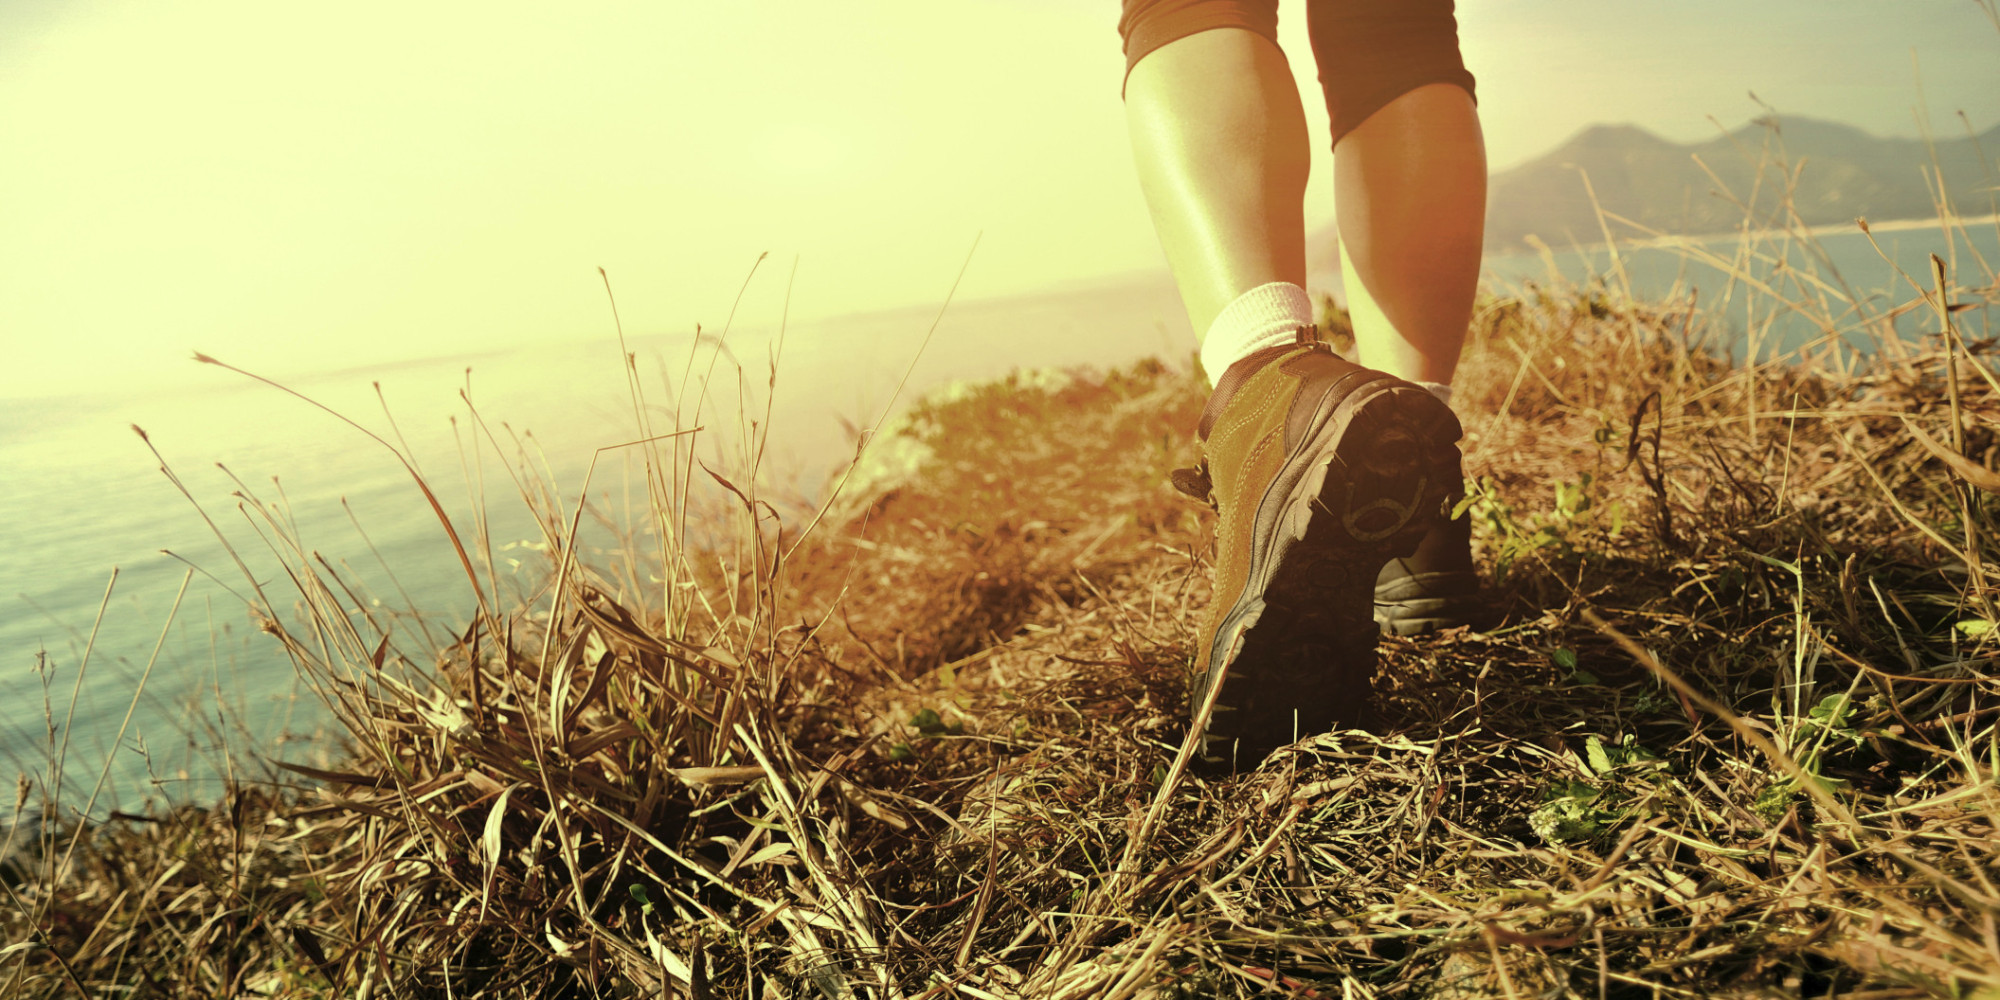 17 Literary Quotes About The Joy Of Walking | HuffPost